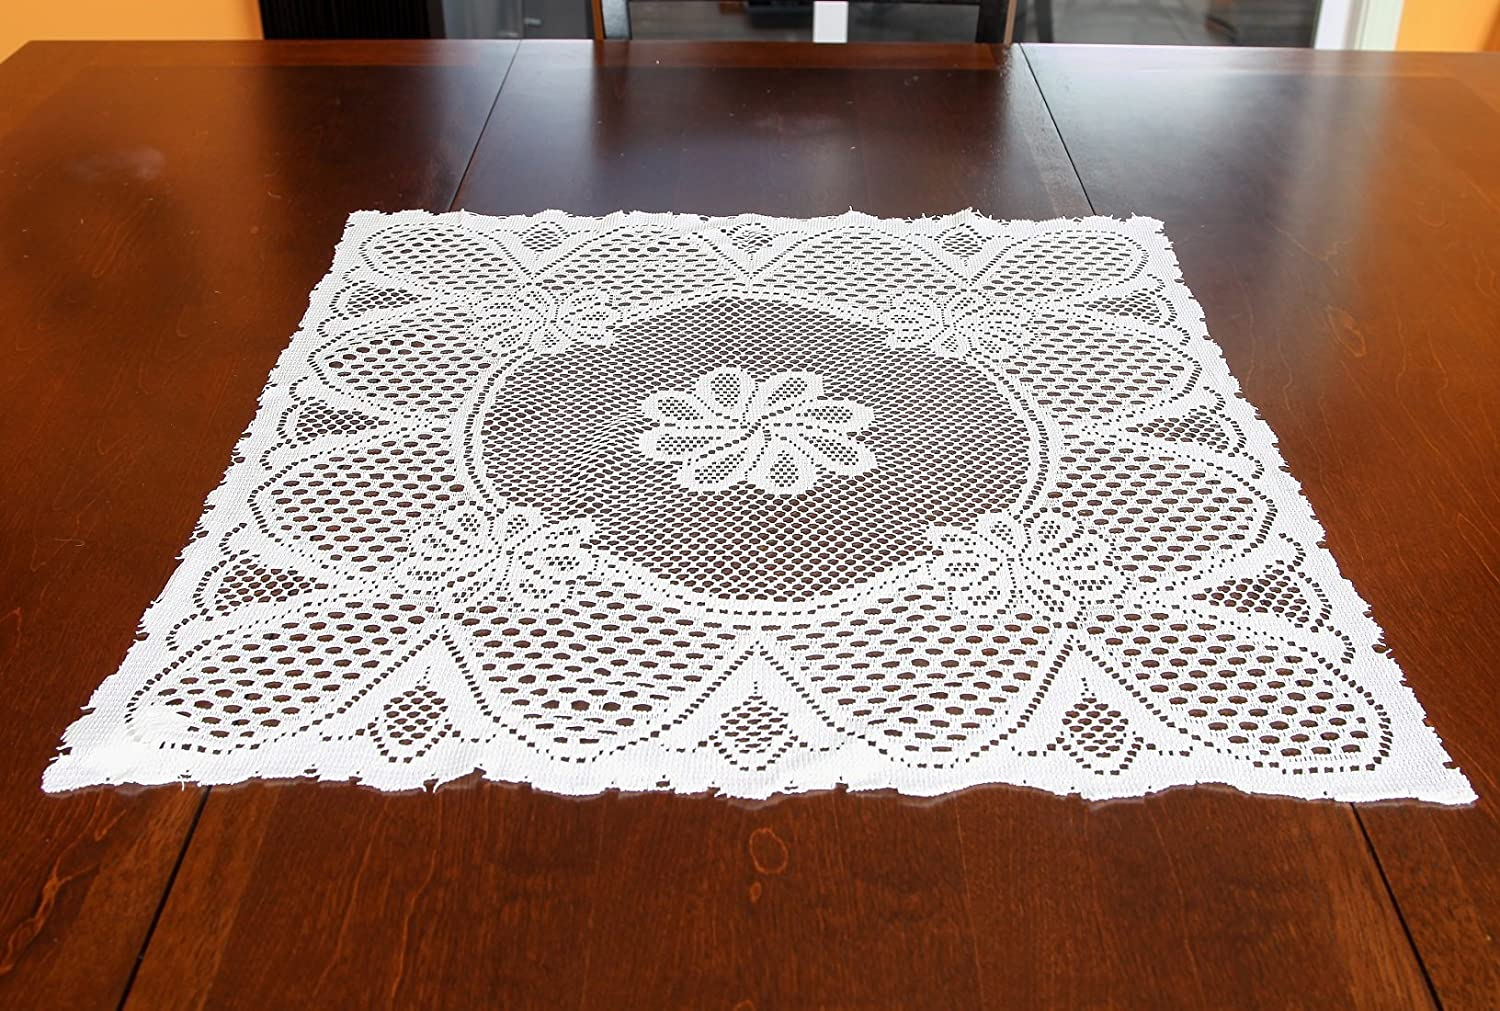 Home-X Vintage Style Square Lace Doilies Cream or White Cream COMINHKPR113915